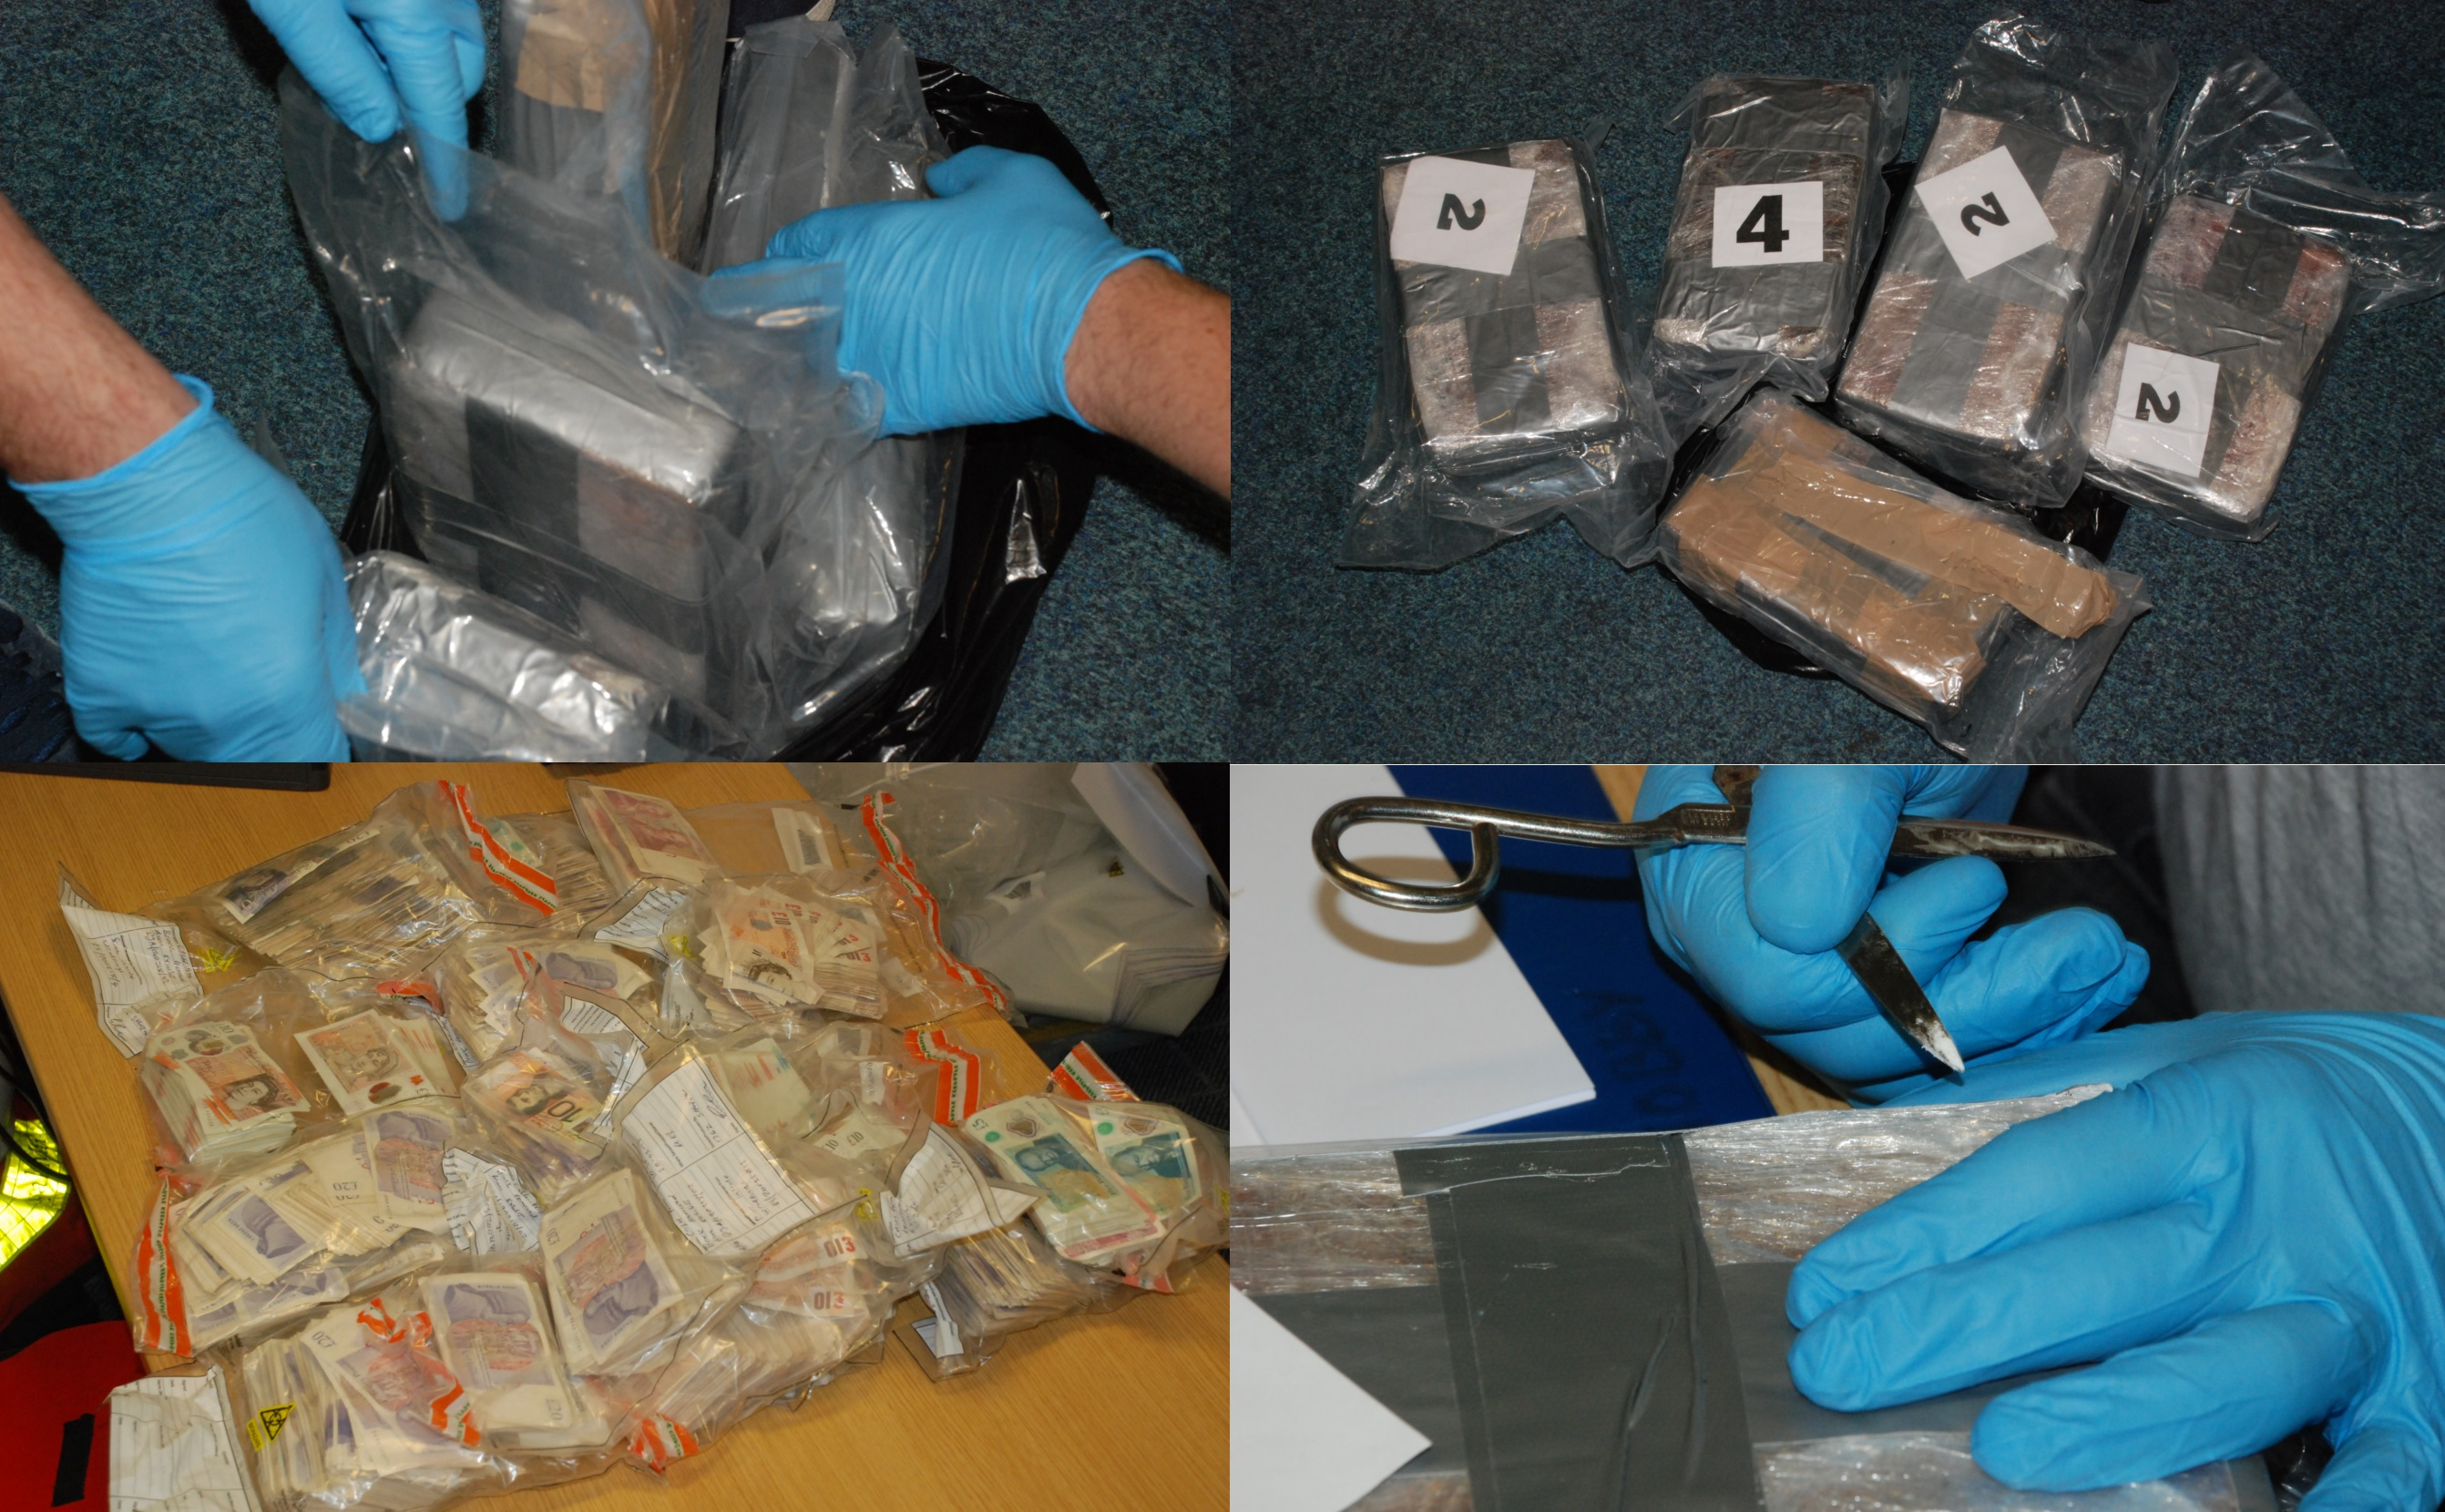 More than £750,000 in suspected Class A drugs and cash seized in raids